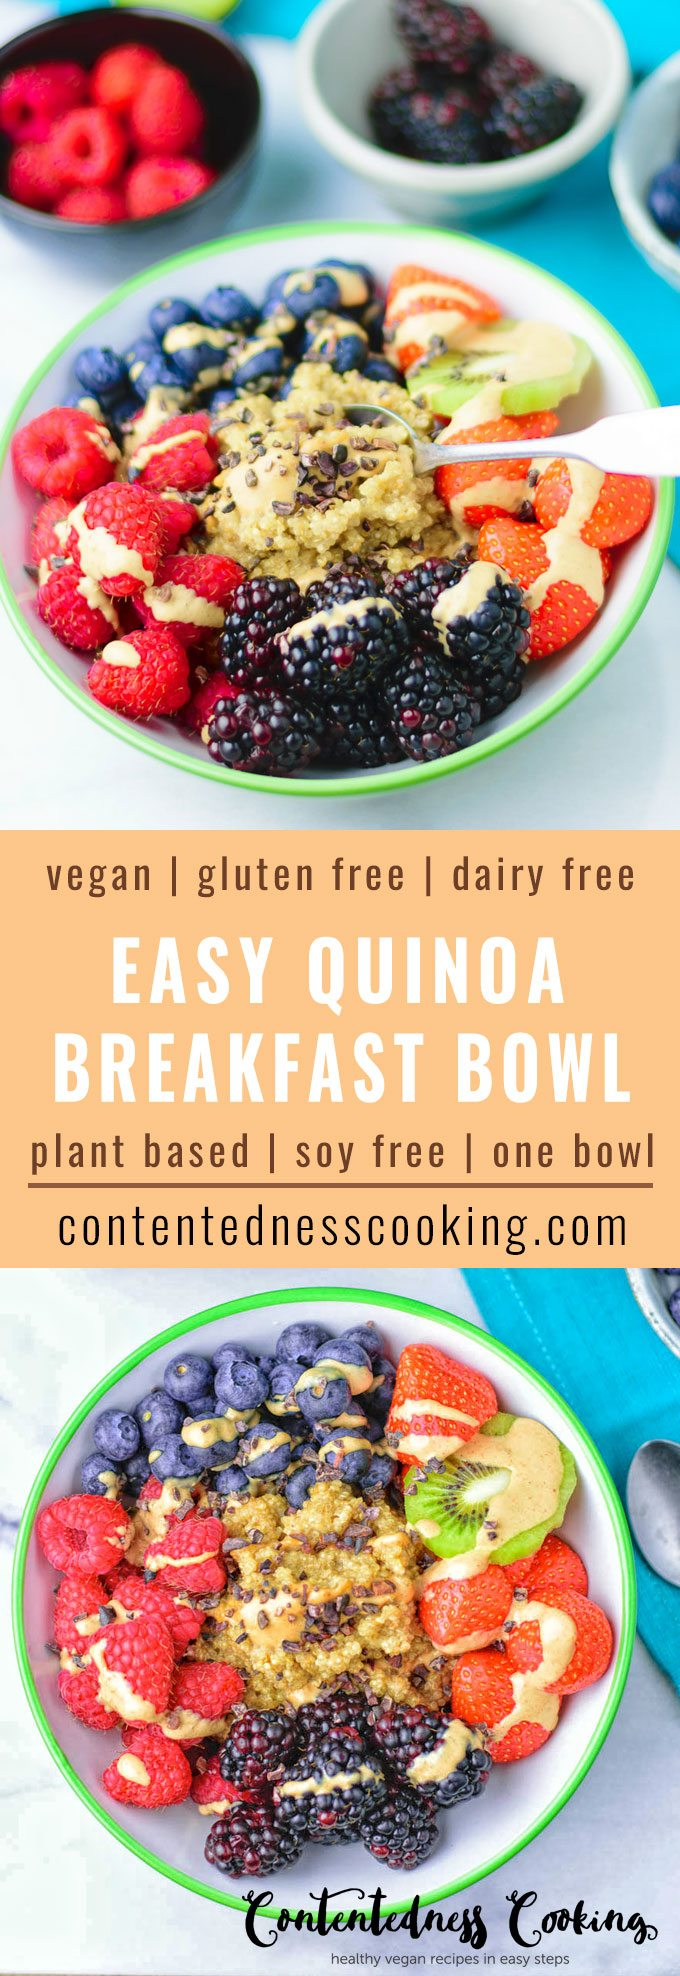 Easy Everyday Quinoa Breakfast Bowl | #vegan #glutenfree #plantbased #dairy free